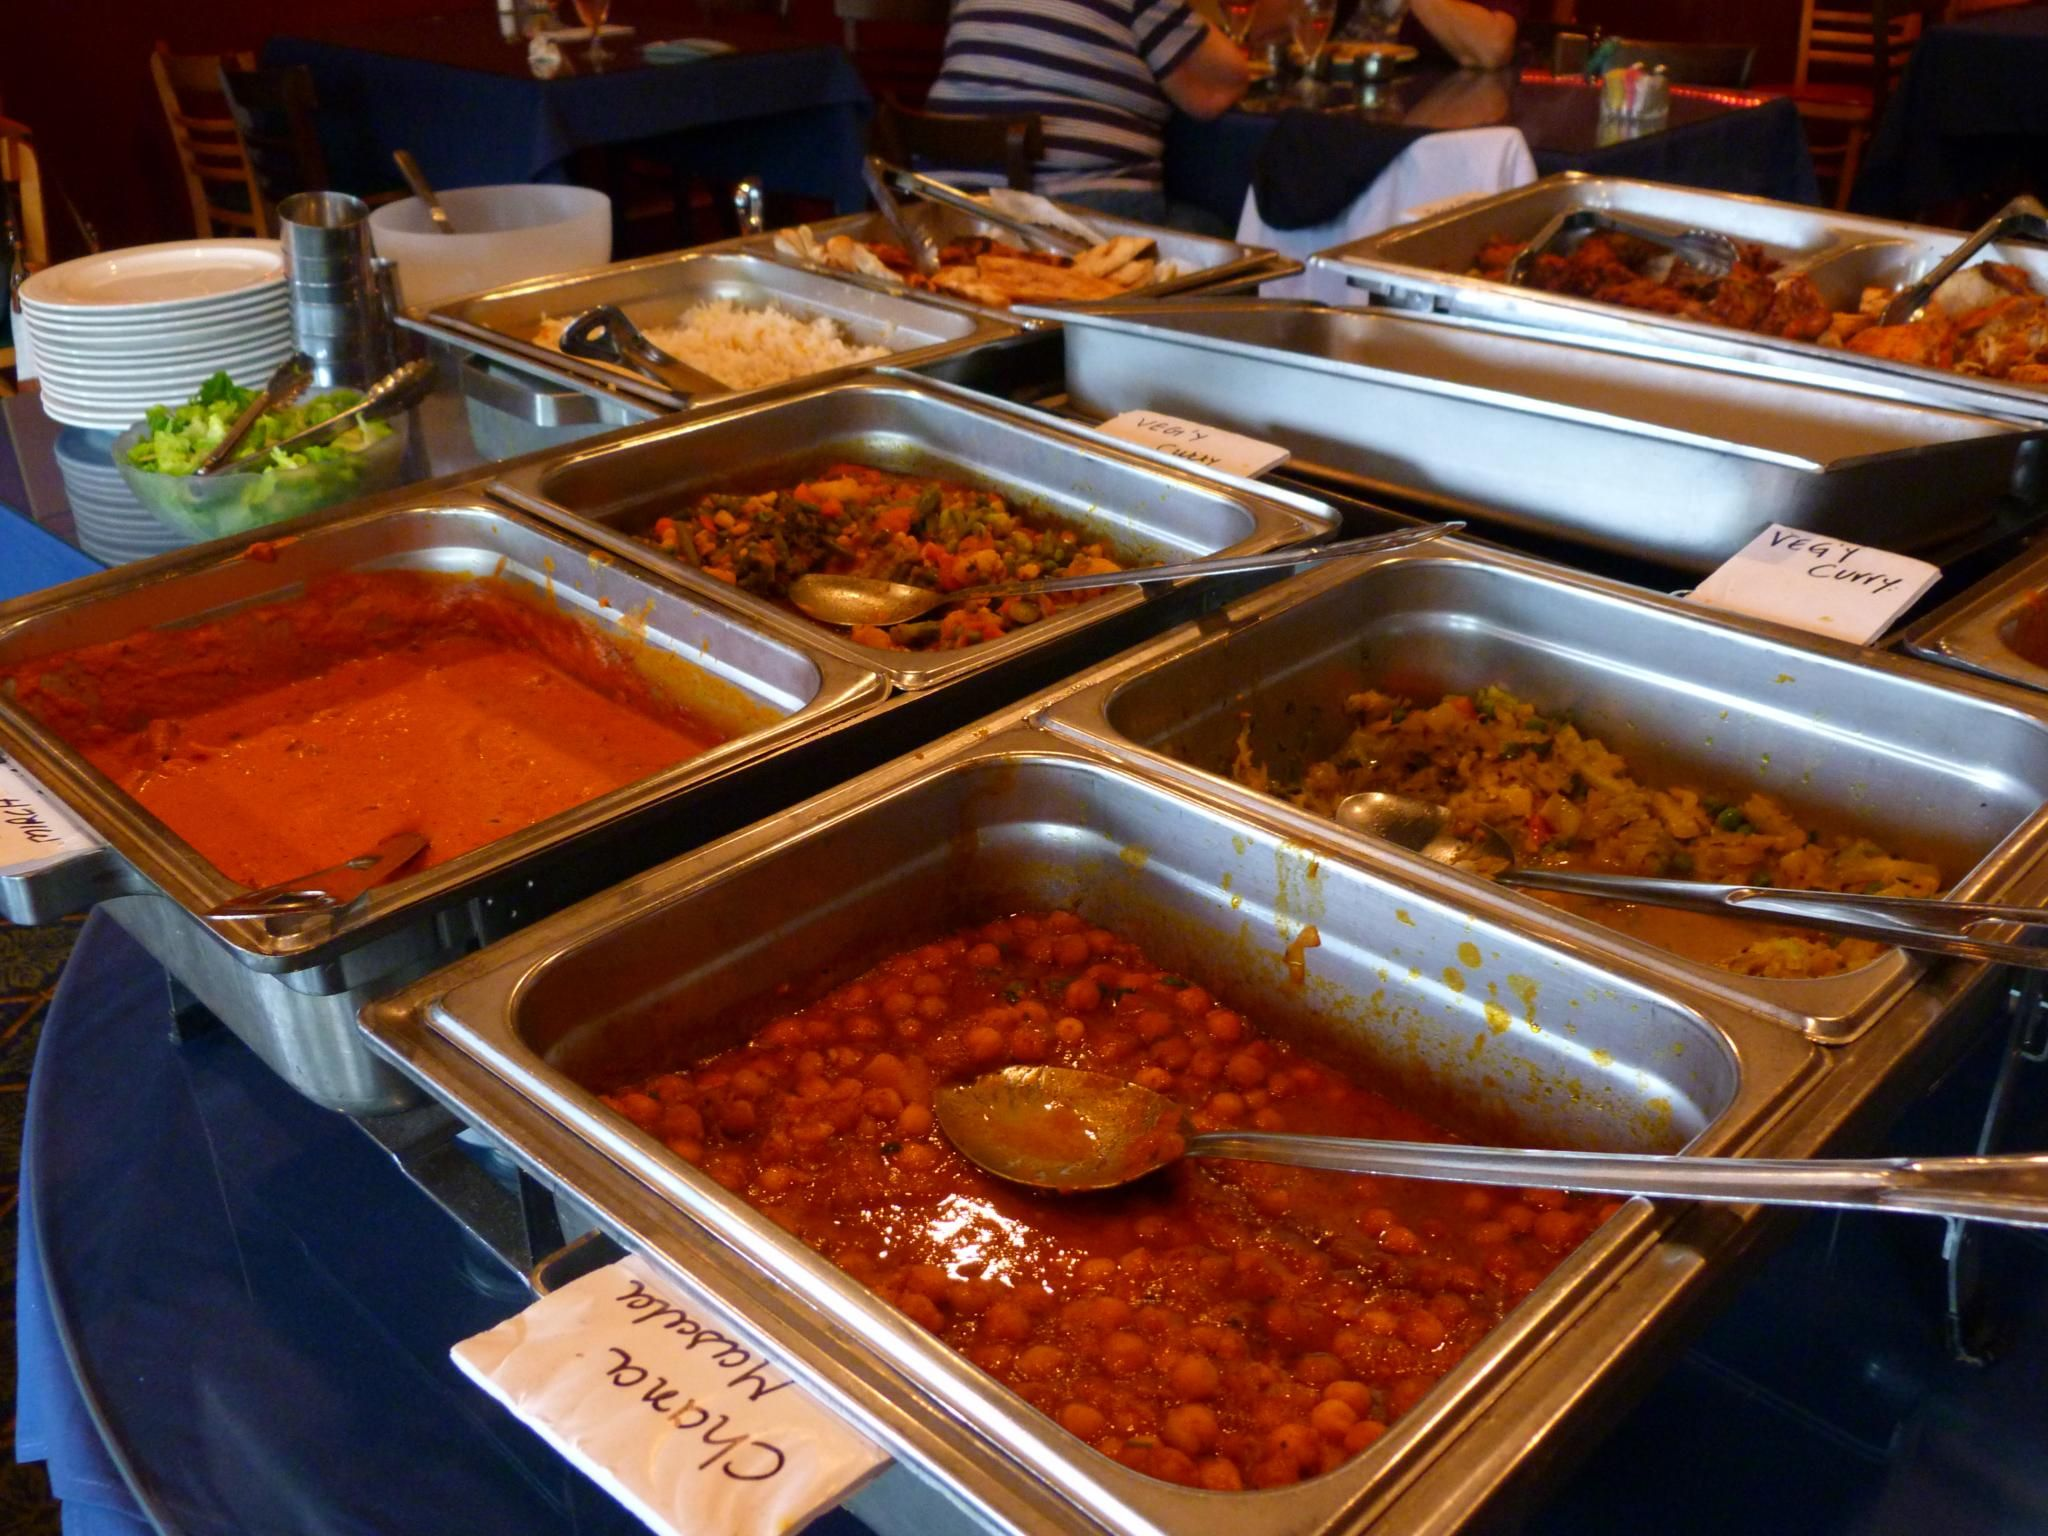 Have You Tried Our Multi Cuisine Lunch Buffet Yet You Must Give It A Go To Enjoy A Wide Range Of Dishes That Are Not Just Popular Because Of Their Flavor But